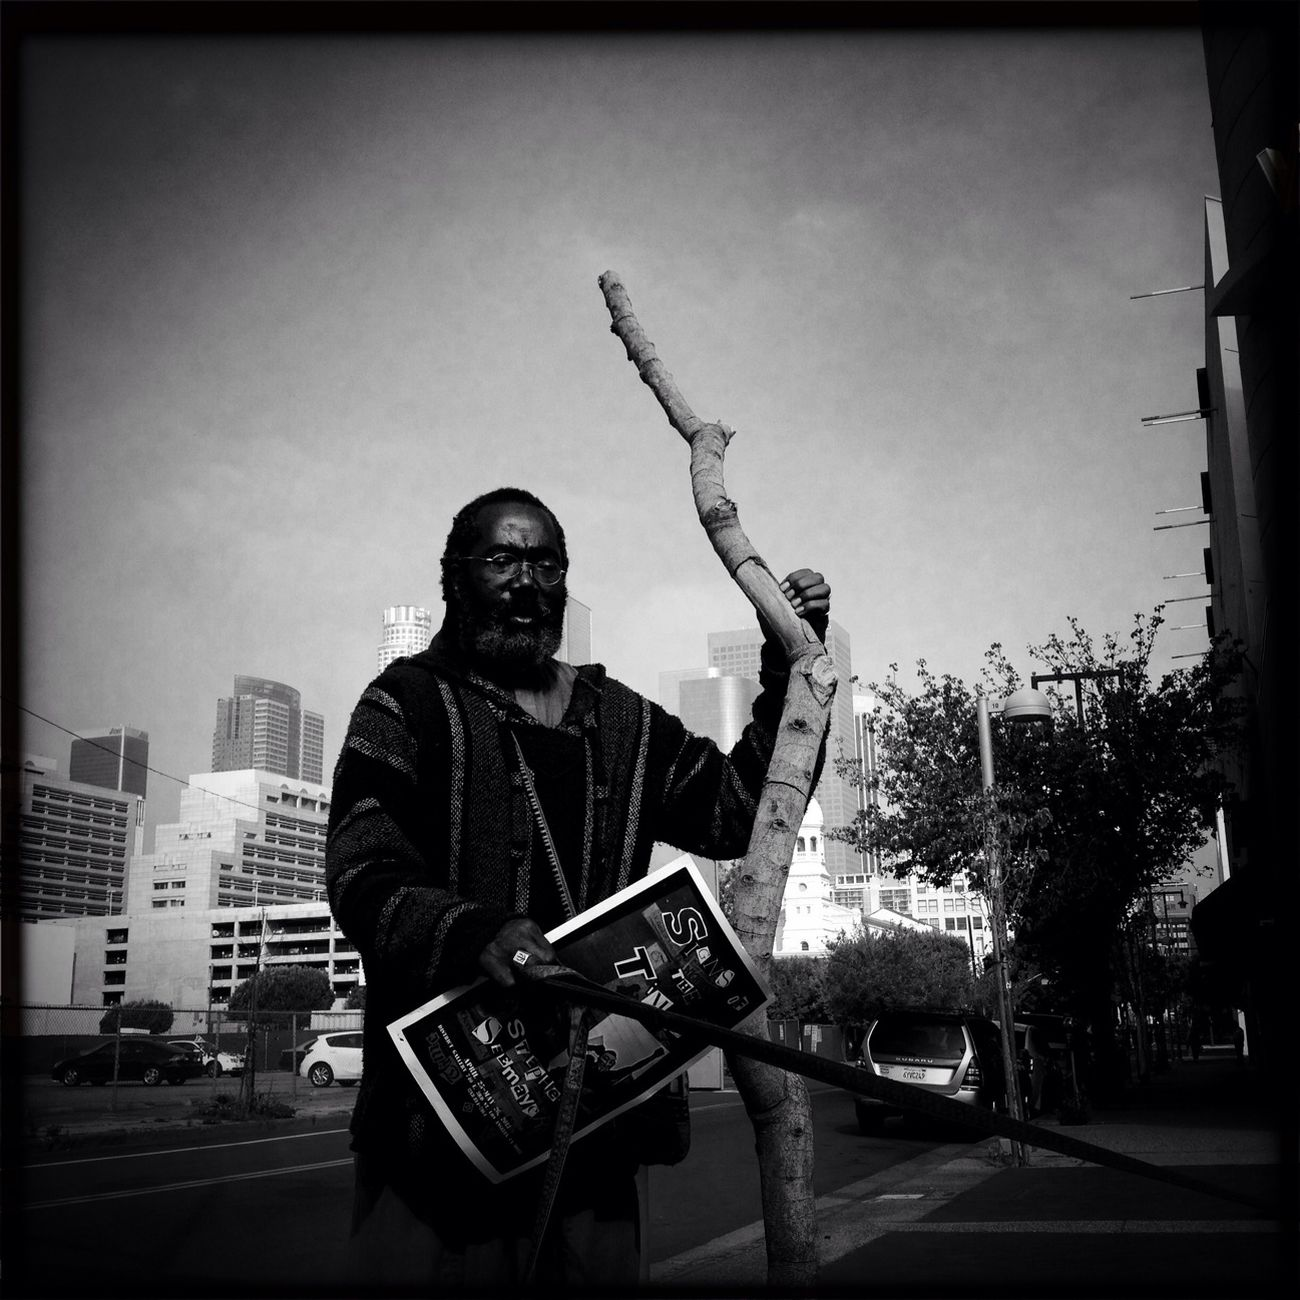 """""""Spirit"""" Prophet with Staff. He want to show people the """"Signs of the Time"""" also the title of his art show which warns people about the second coming of Christ. #weareJuxt"""